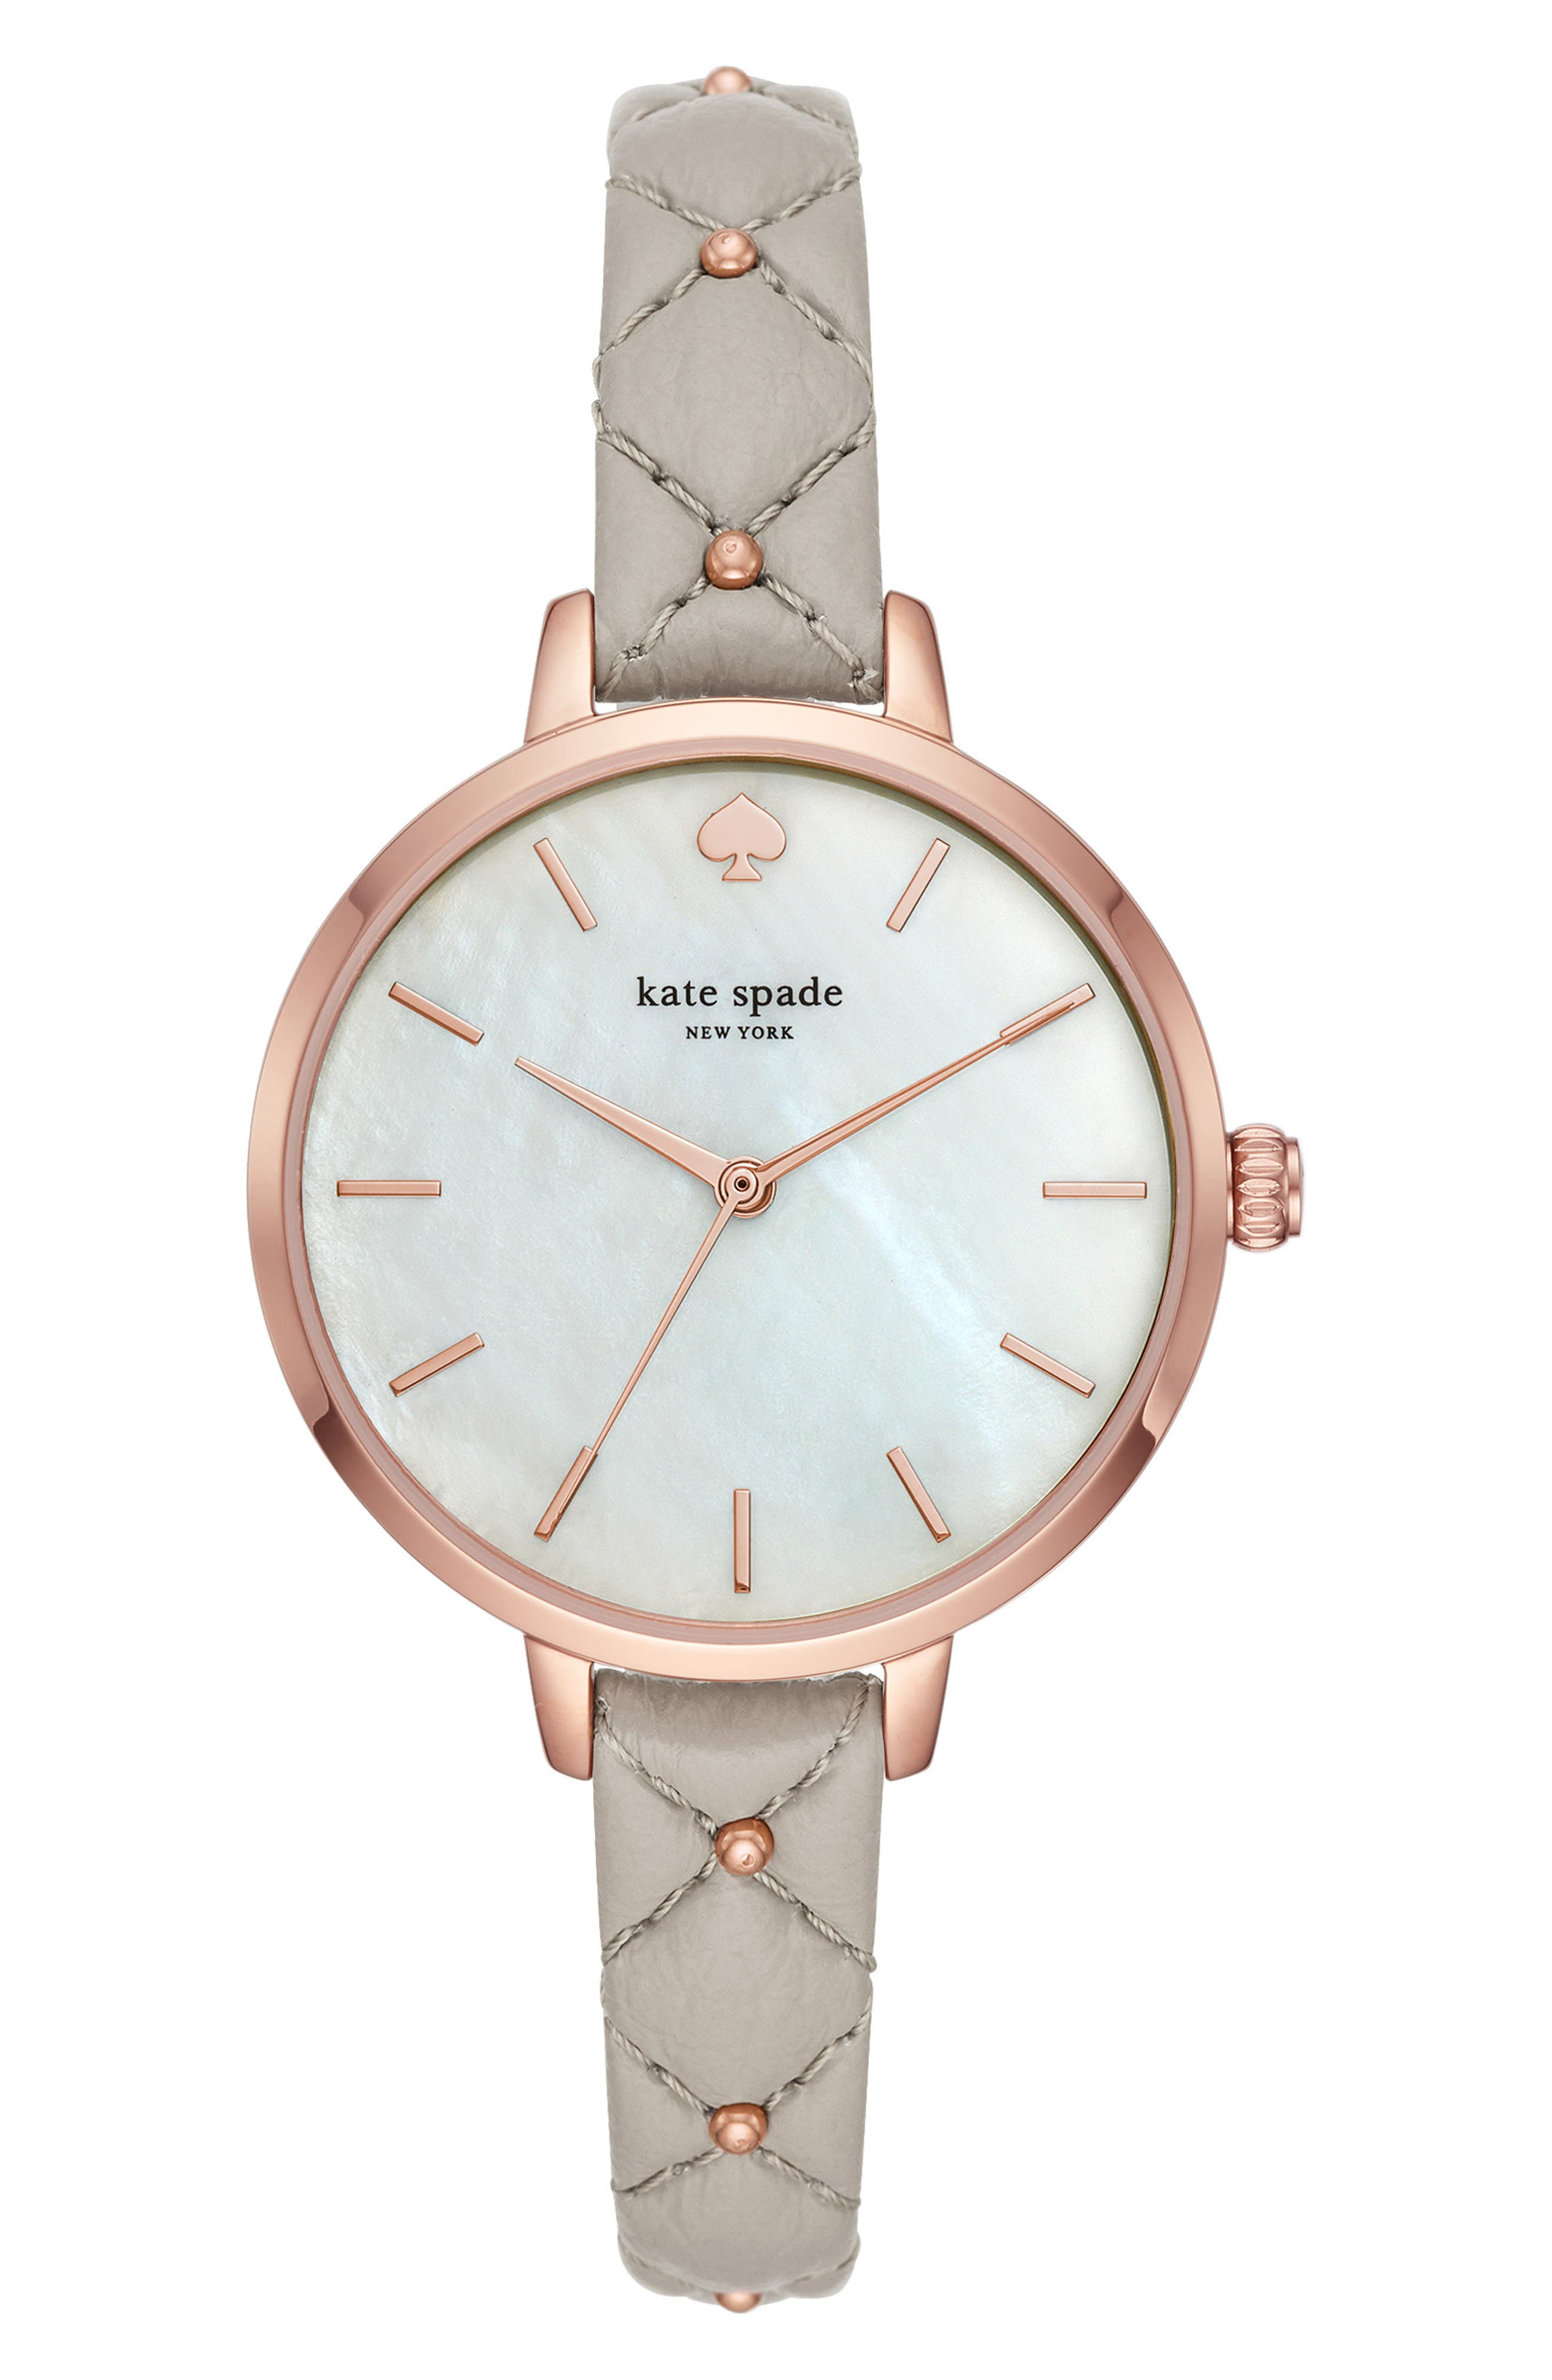 KATE SPADE NEW YORK, metro leather strap watch, 34mm, Main thumbnail 1, color, GREY/ MOP/ ROSE GOLD